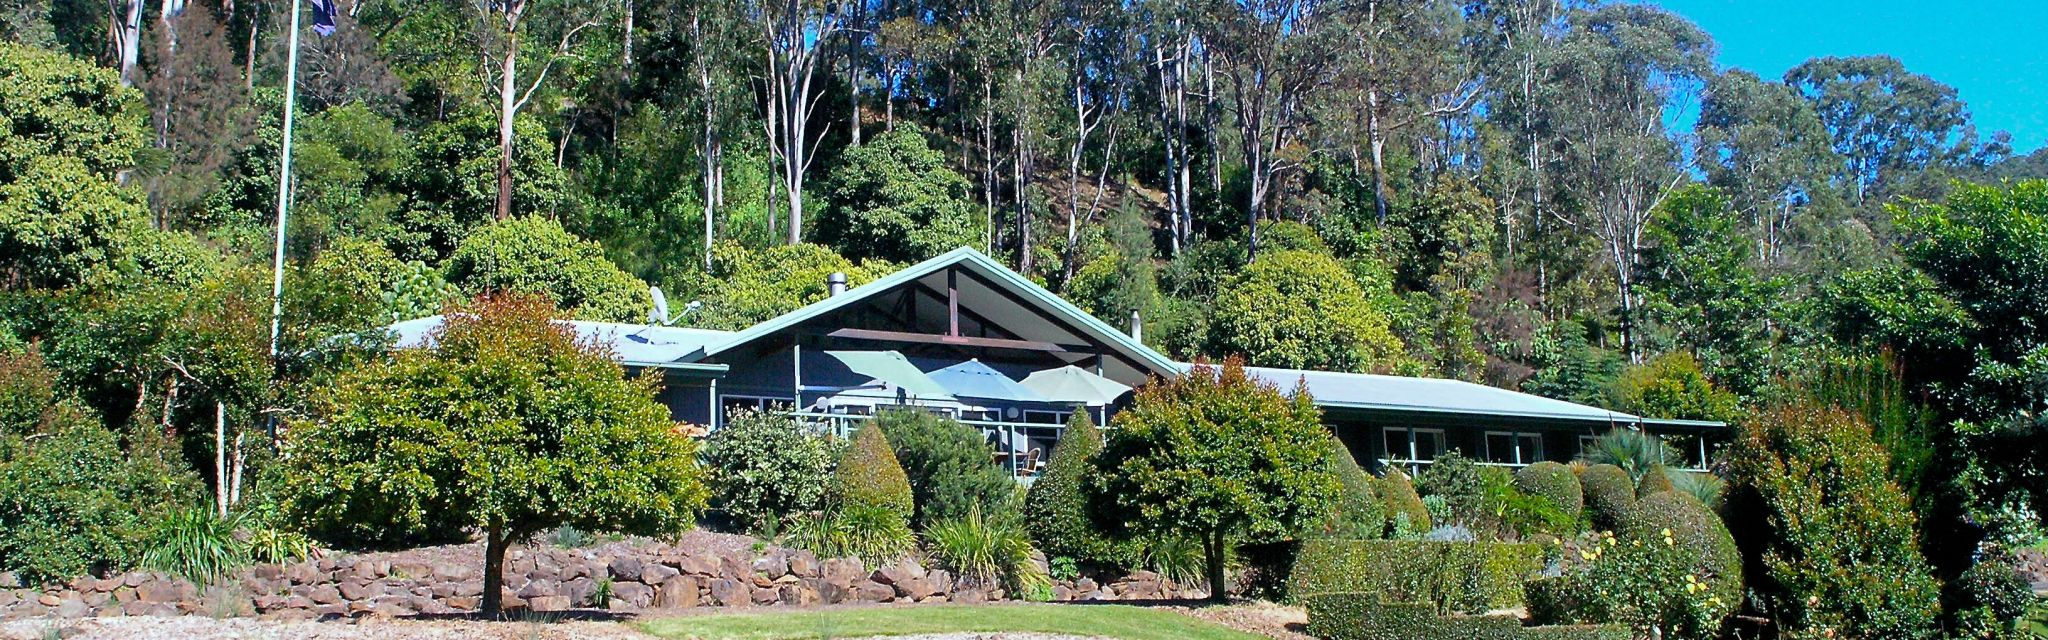 Cougal Park accommodation for our Border Ranges Short Break Tour